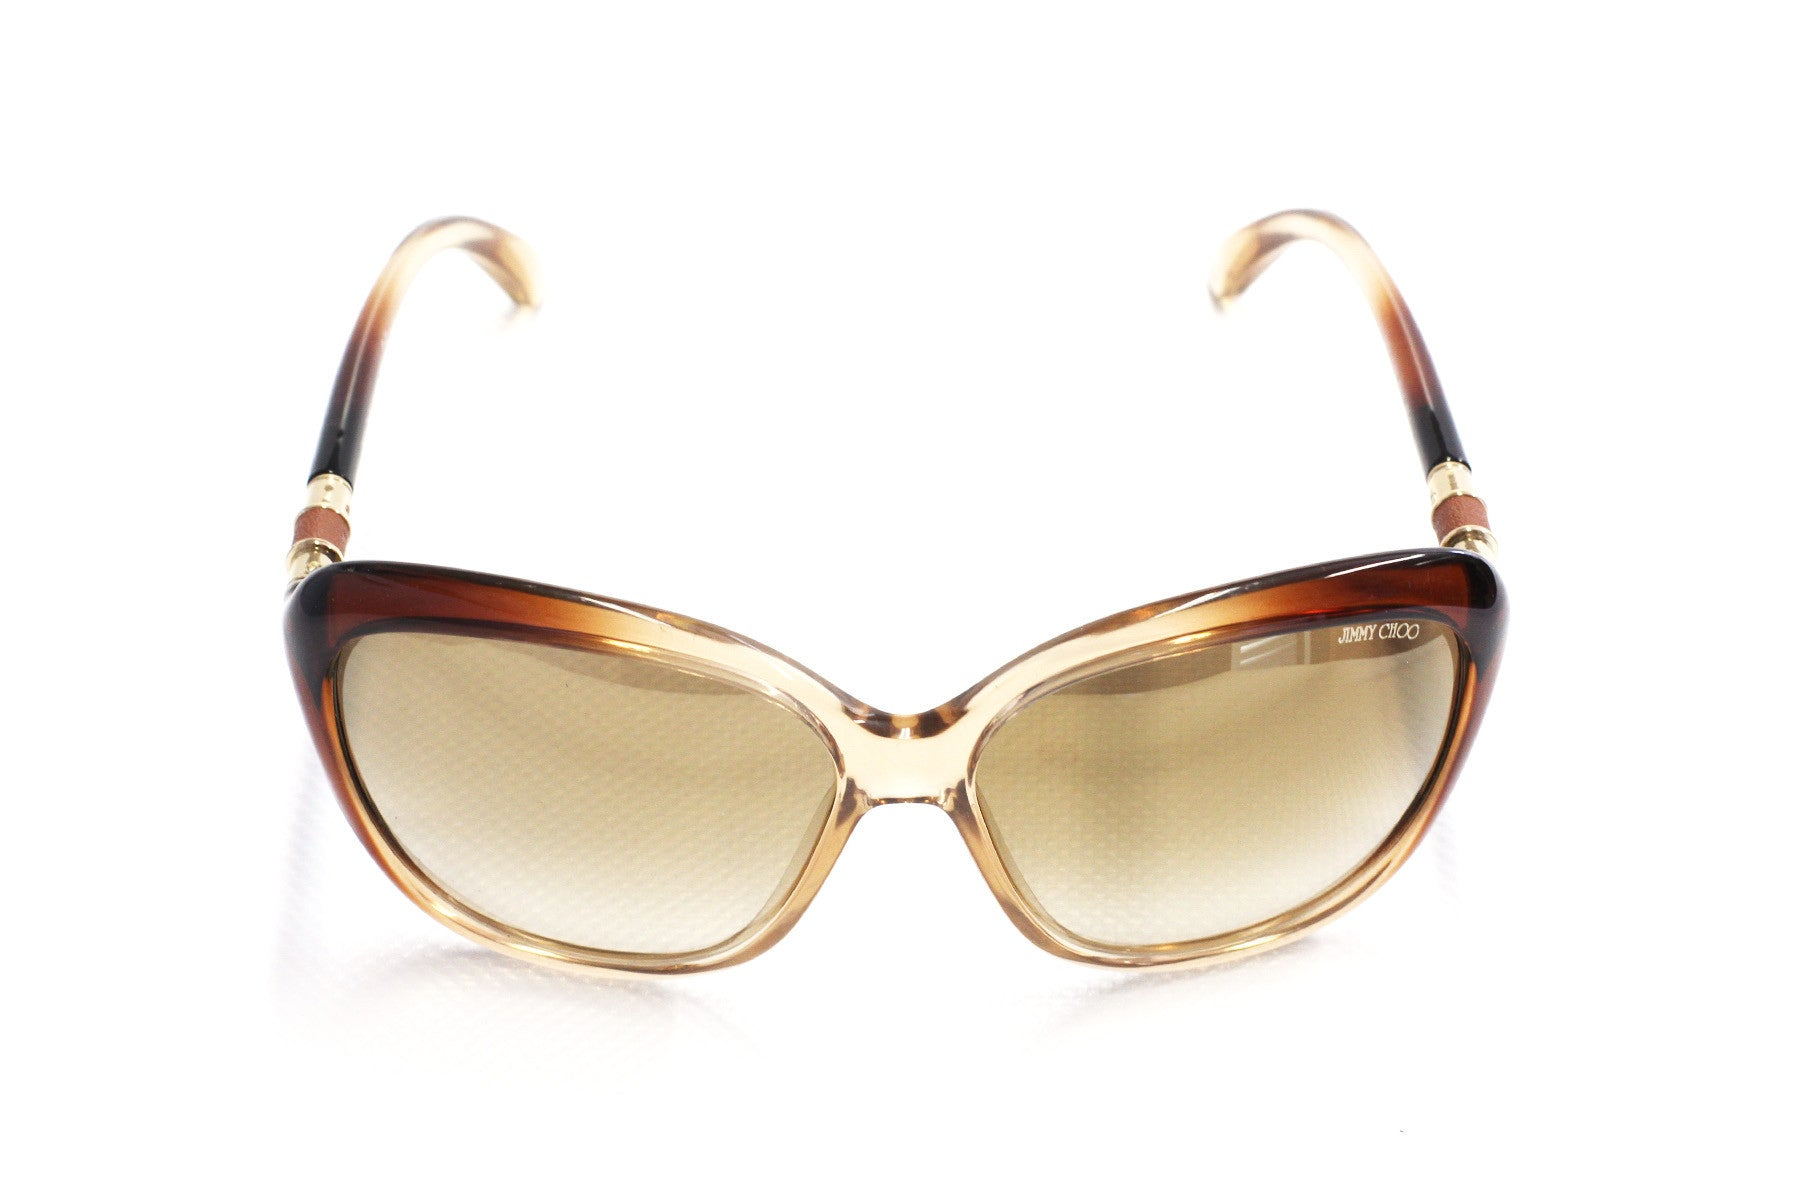 Jimmy Choo Stephanie BV8JL Brown Fade Sunglasses at Enderbys UK